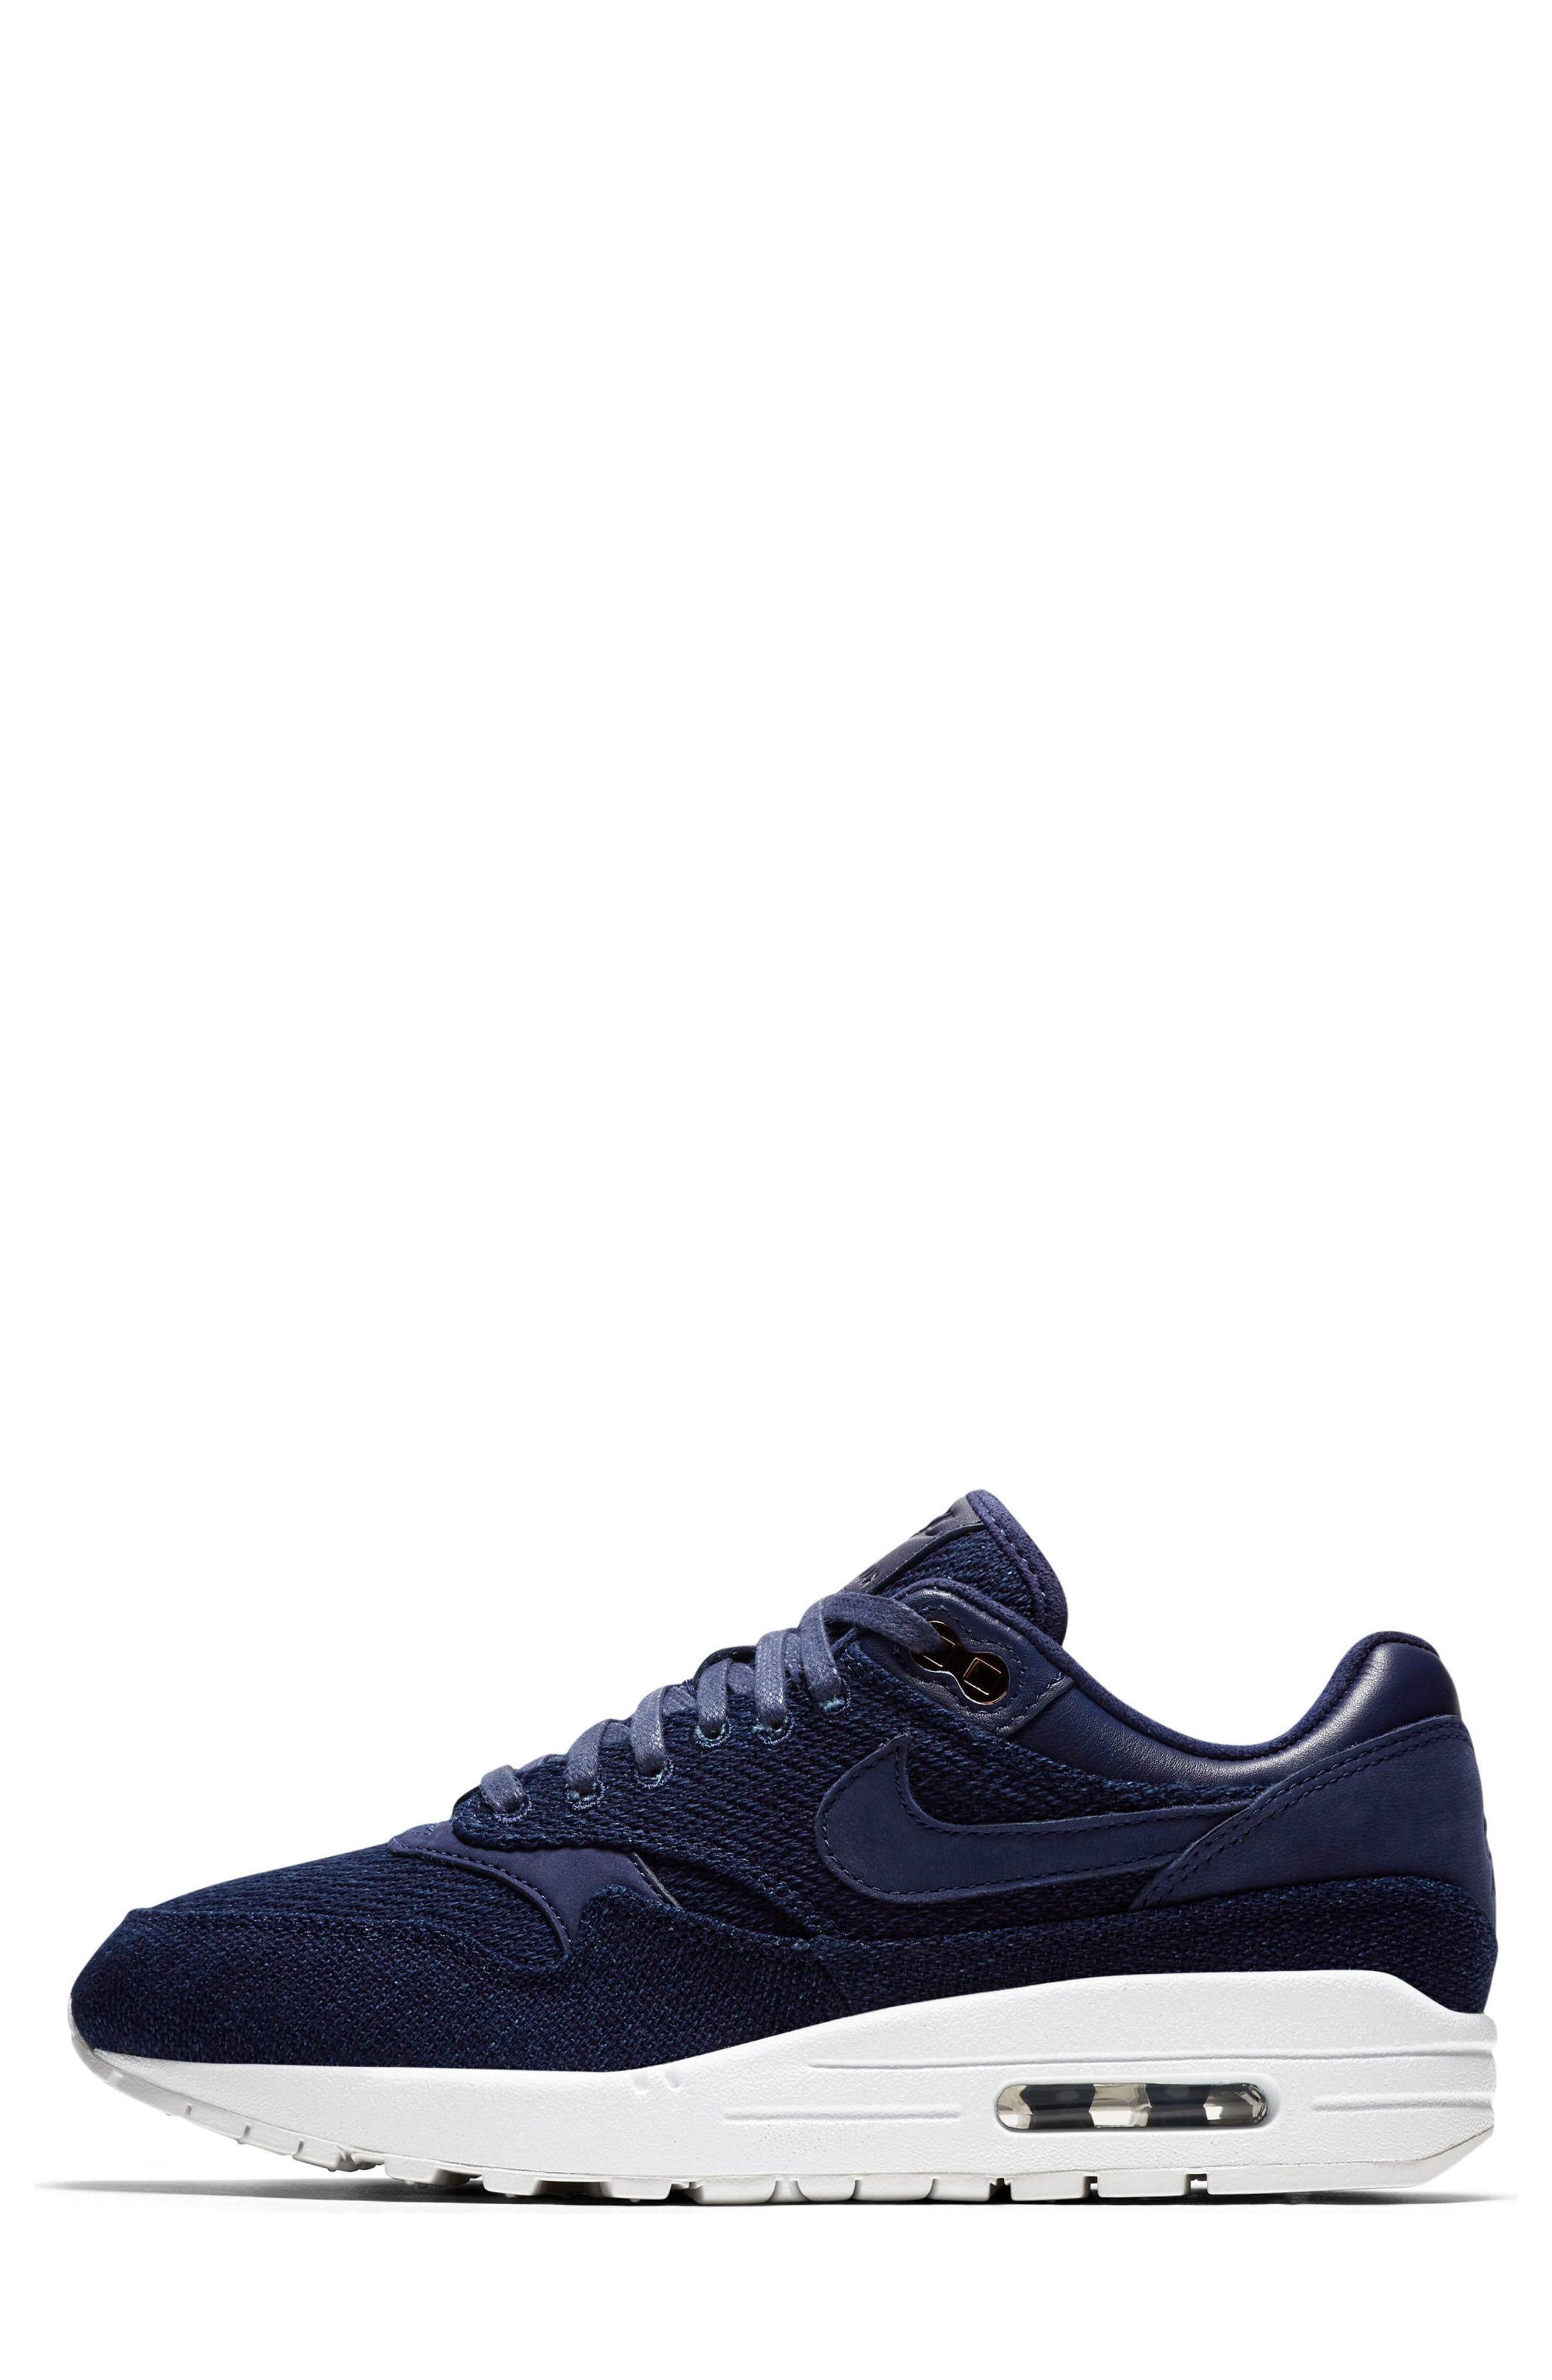 Air Max 1 Lux Sneaker,                             Alternate thumbnail 3, color,                             Binary Blue/ White/ Stout